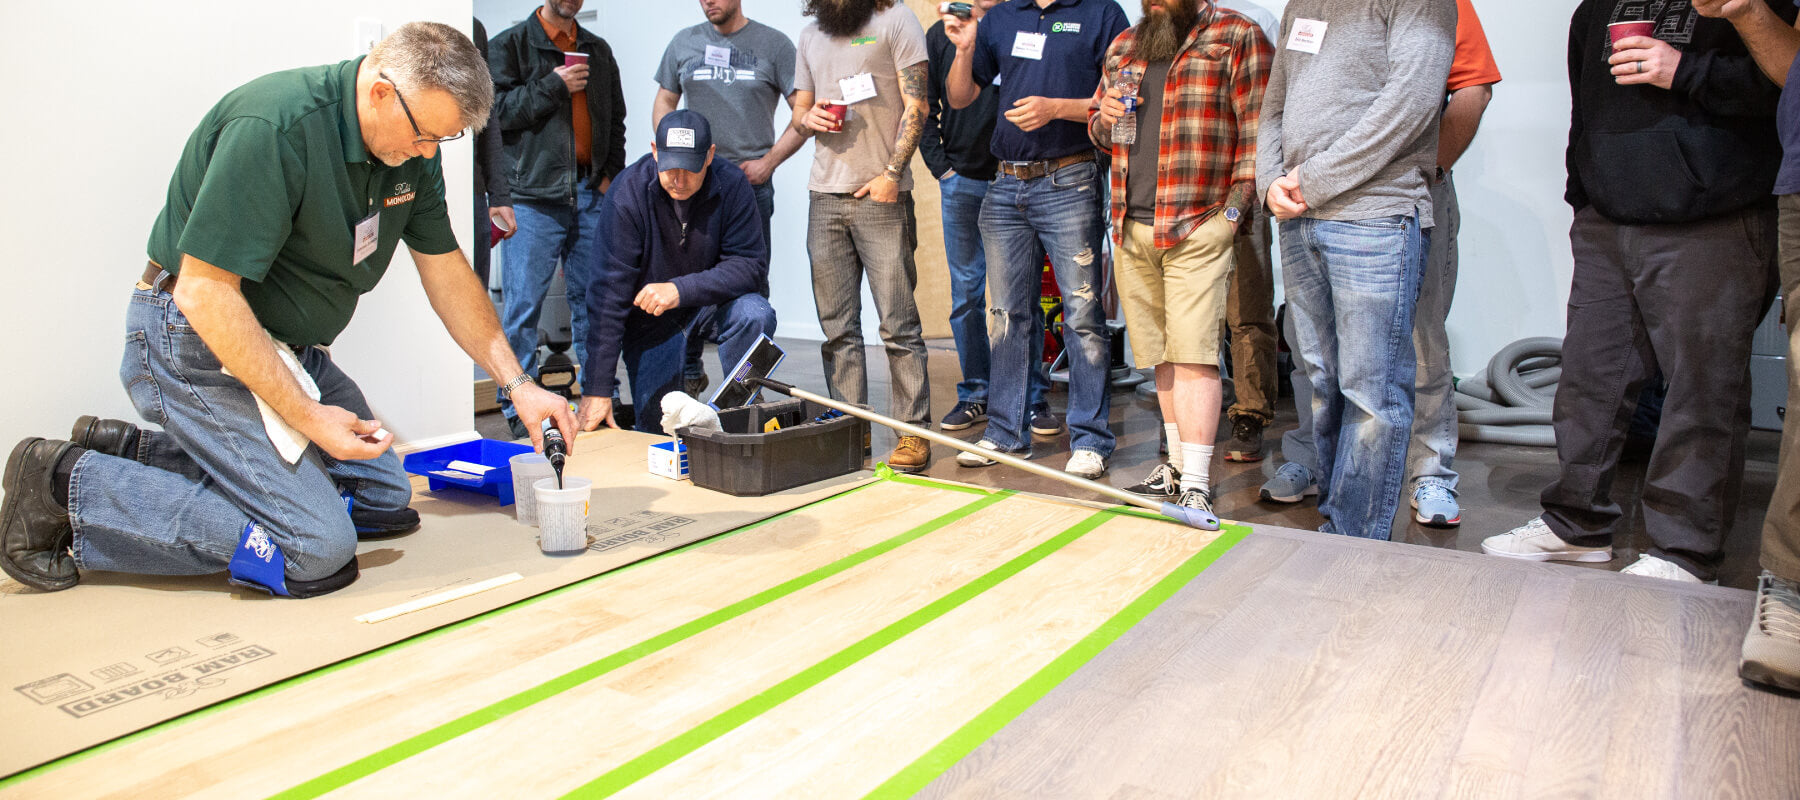 An instructor kneeling on hardwood flooring while teaching a group of men how to finish the hardwood flooring